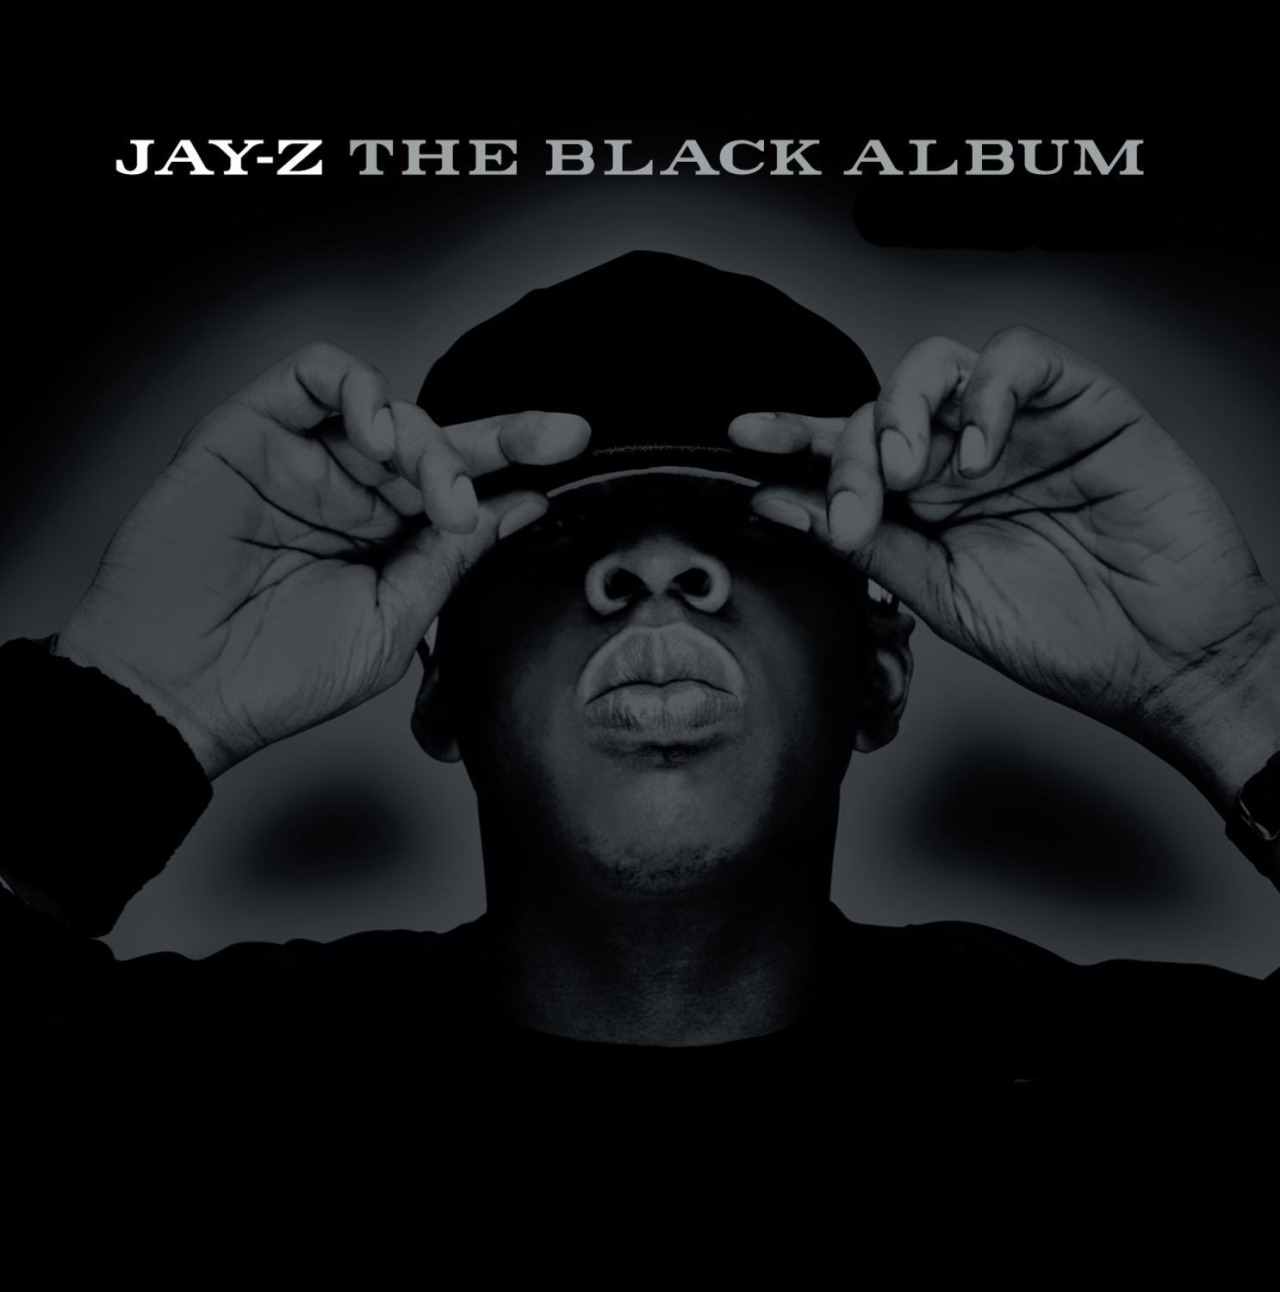 Today in Hip Hop History: Jay-Z Dropped 'The Black Album' 15 Years Ago